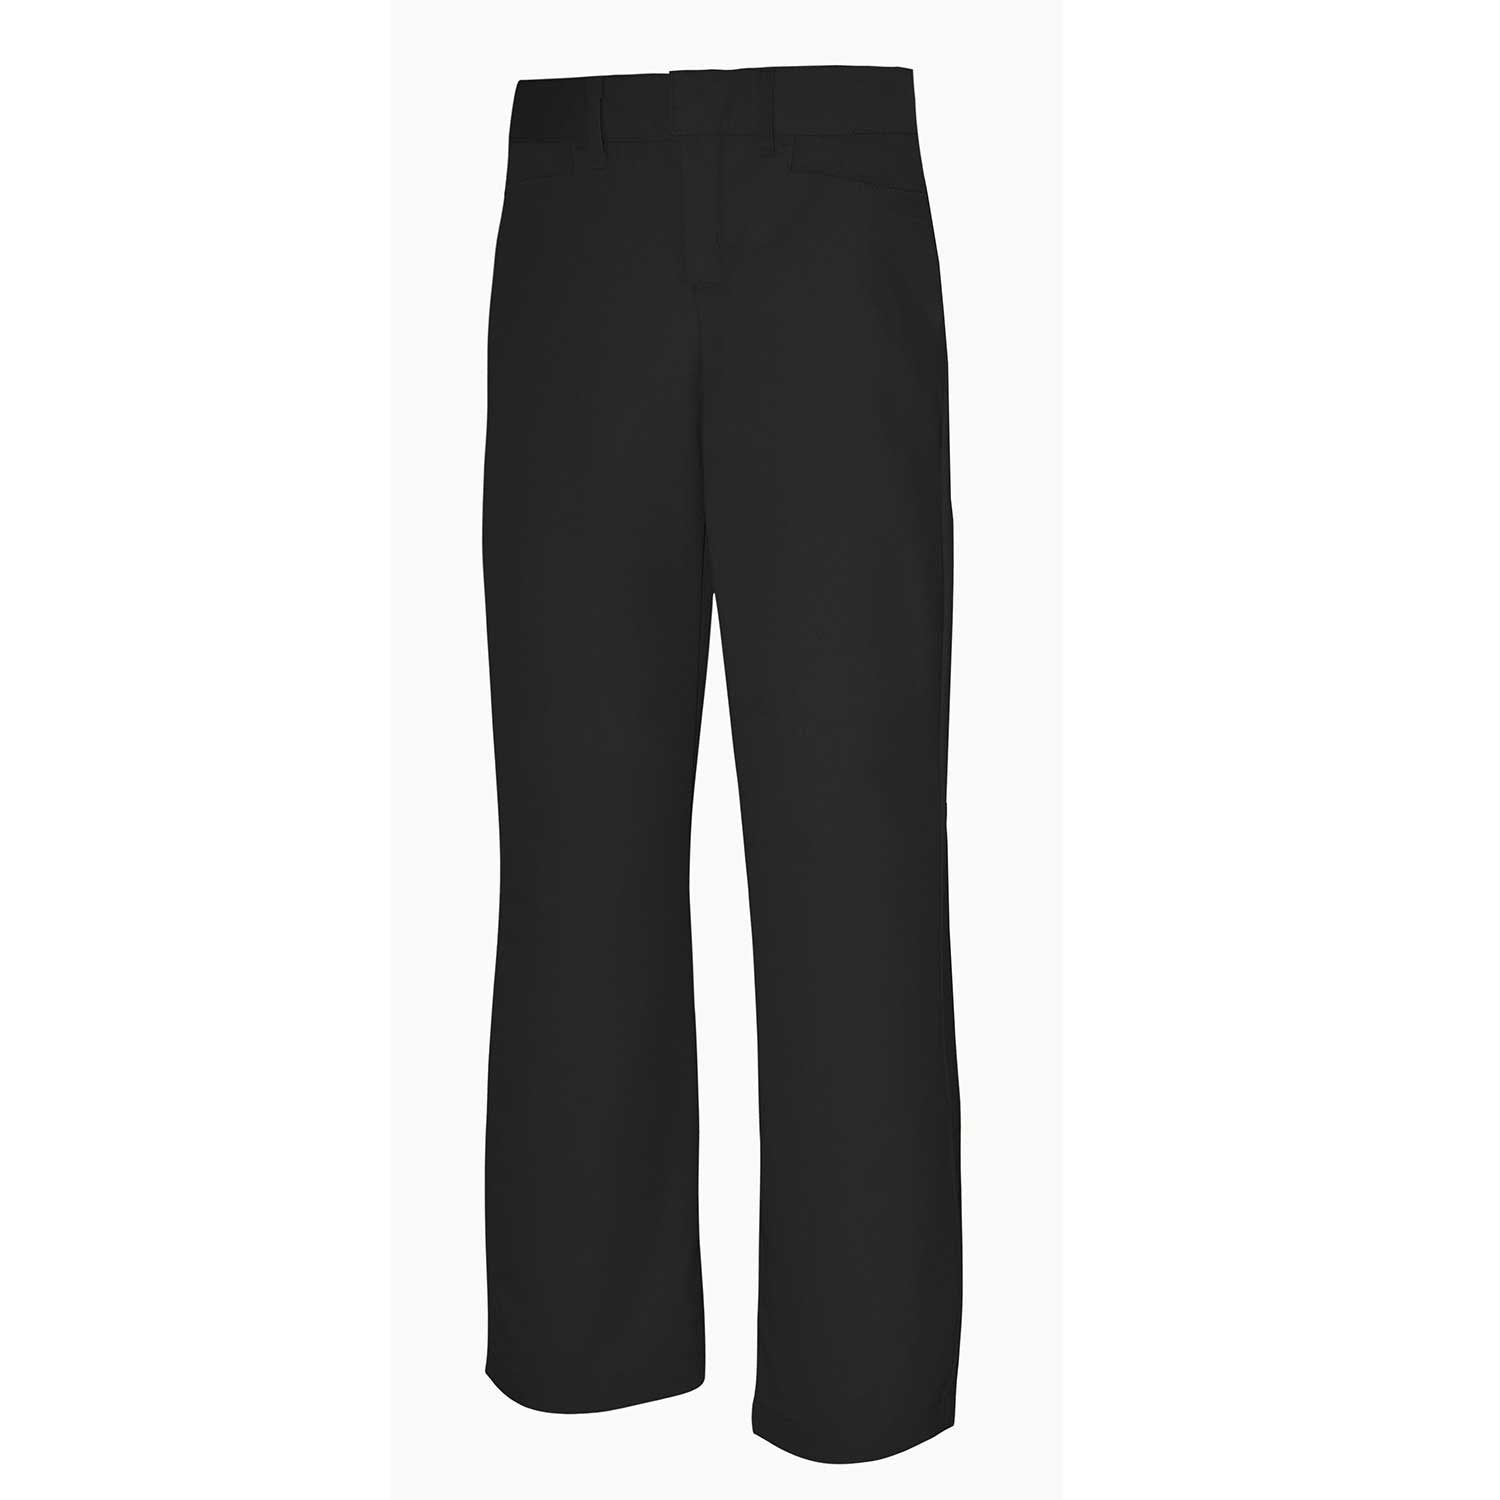 Junior's Mid-Rise Plain Front Flex Twill Pants